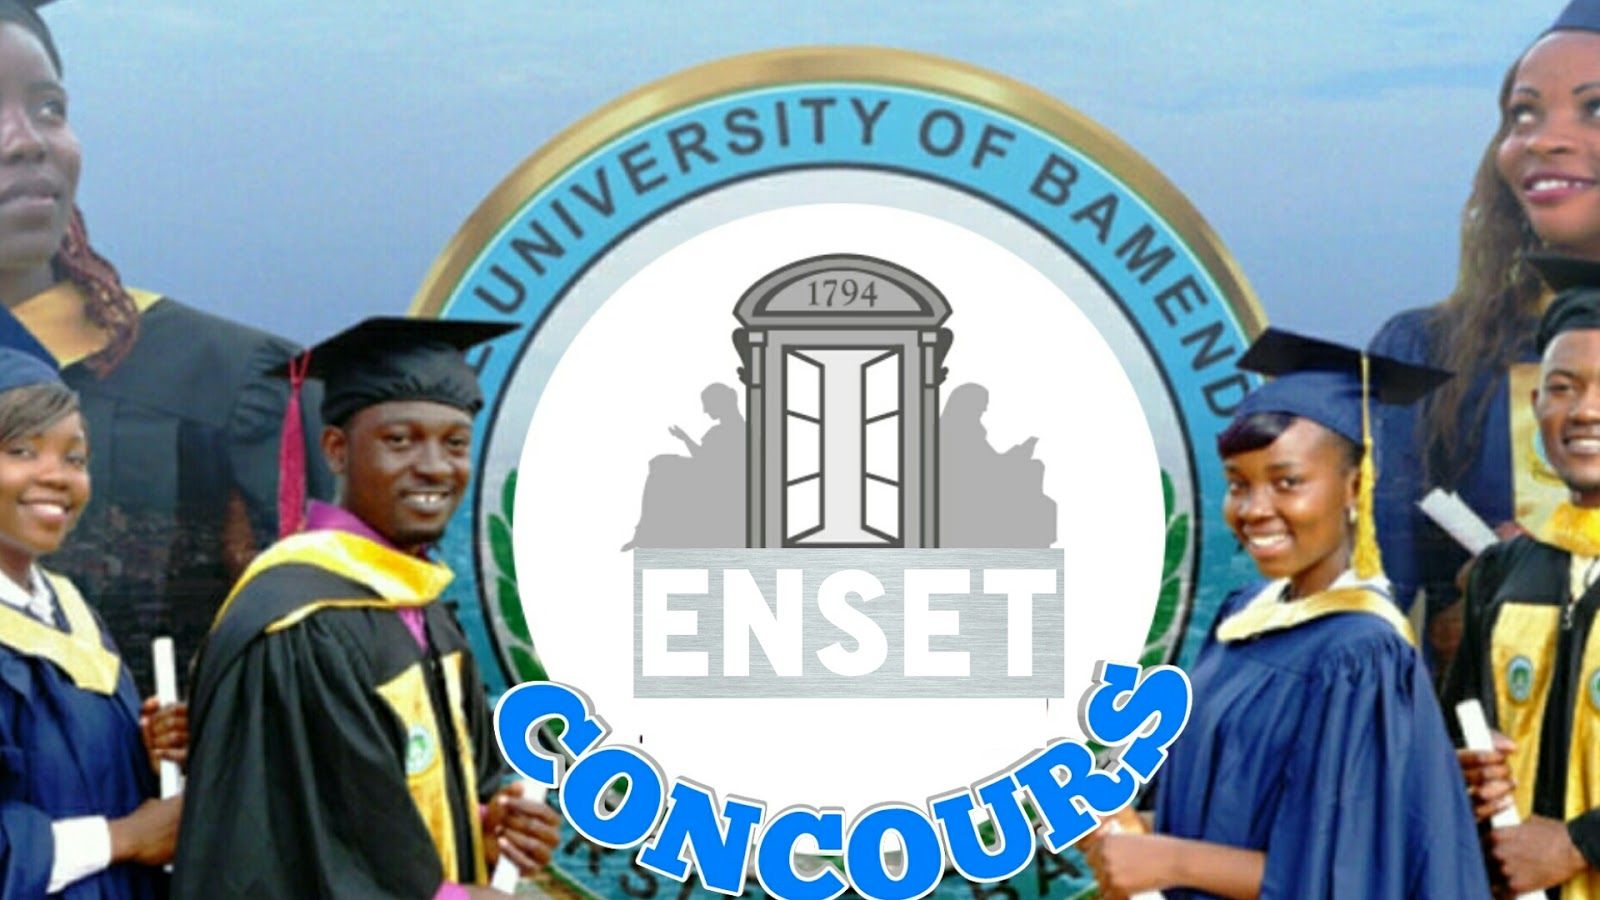 Htttc Enset Bambili Entrance 2018 2019 3rd Year First Cycle University Of Bamenda Htttc Concours 2018 2019 Cameroon Concours Cameroon Trial Version